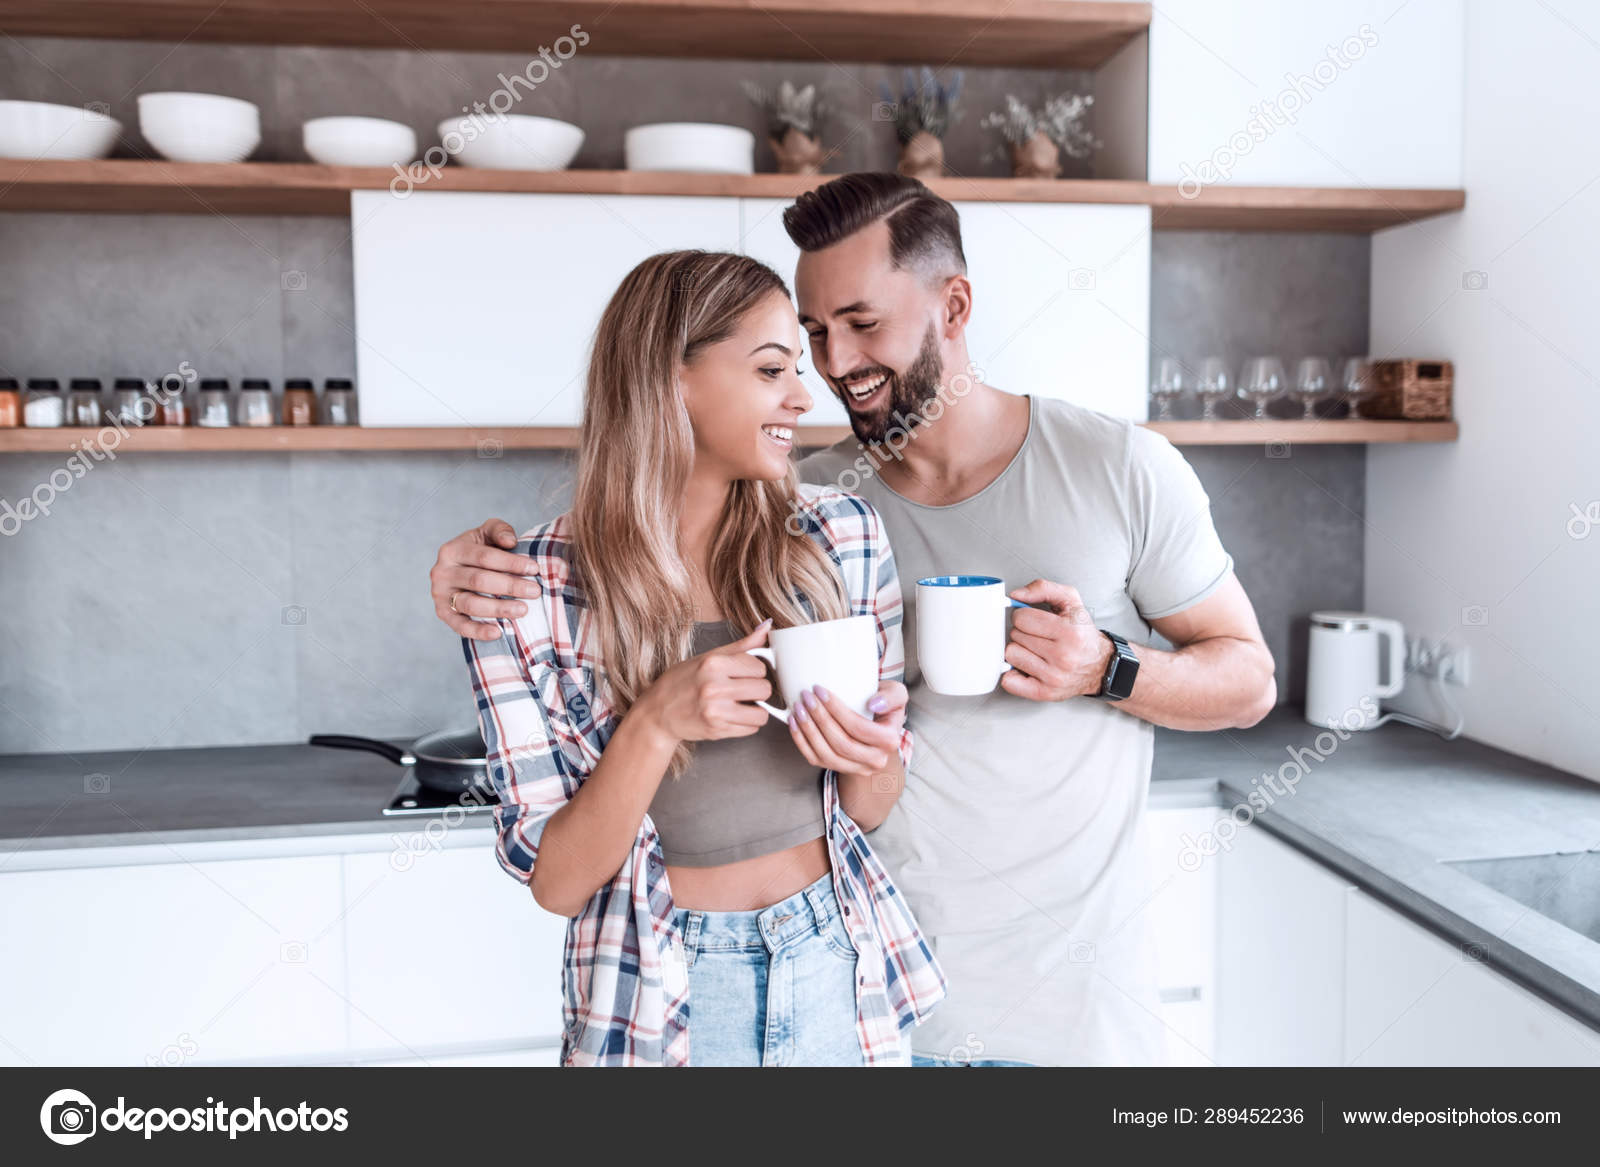 Young Couple In Love In The Kitchen In A Good Morning Stock Photo Image By C Depositedhar 289452236